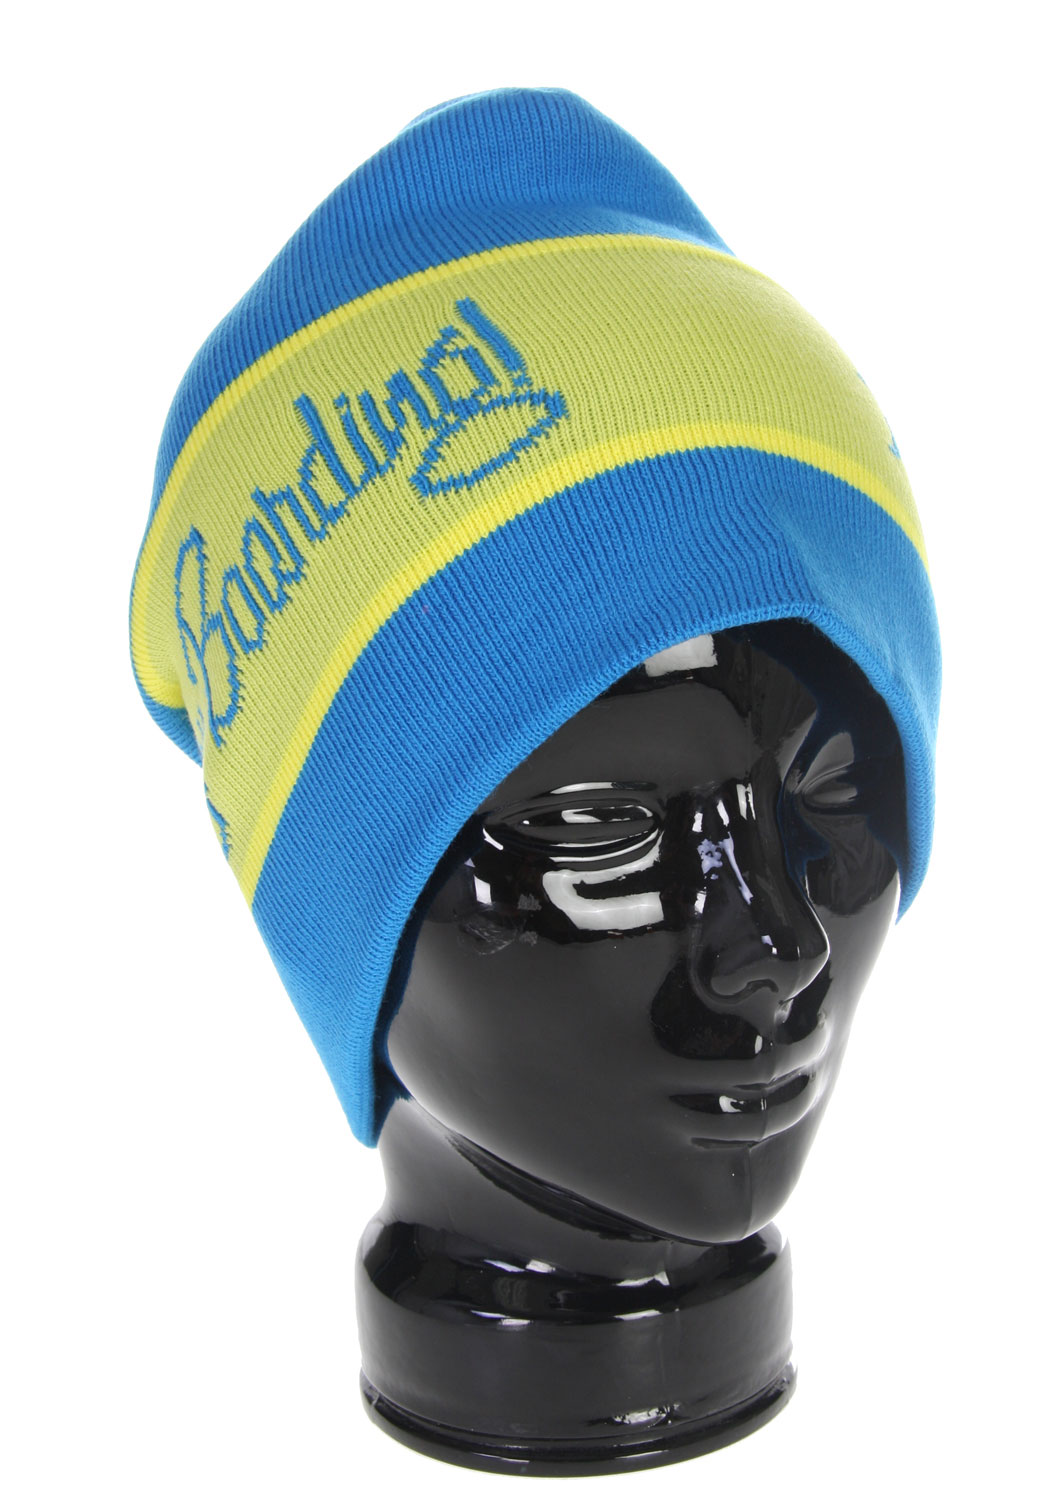 With this hat, you can wear your heart on your sleeve,. Or rather, your head! This great beanie from Forum features contrasting color stripes with the Boarding! knitted on the side of the cap. It is machine knit from 100% soft acrylic and will keep you warm while cruising down the mountain. Shred in style in the Forum Happy Beanie, a hat guaranteed to make a lasting impression. The Forum Happy Beanie Blue is sure to impress!Key Features of The Forum Happy Beanie. 100% soft acrylic Machine knit Engineered logo and stripes - $14.95